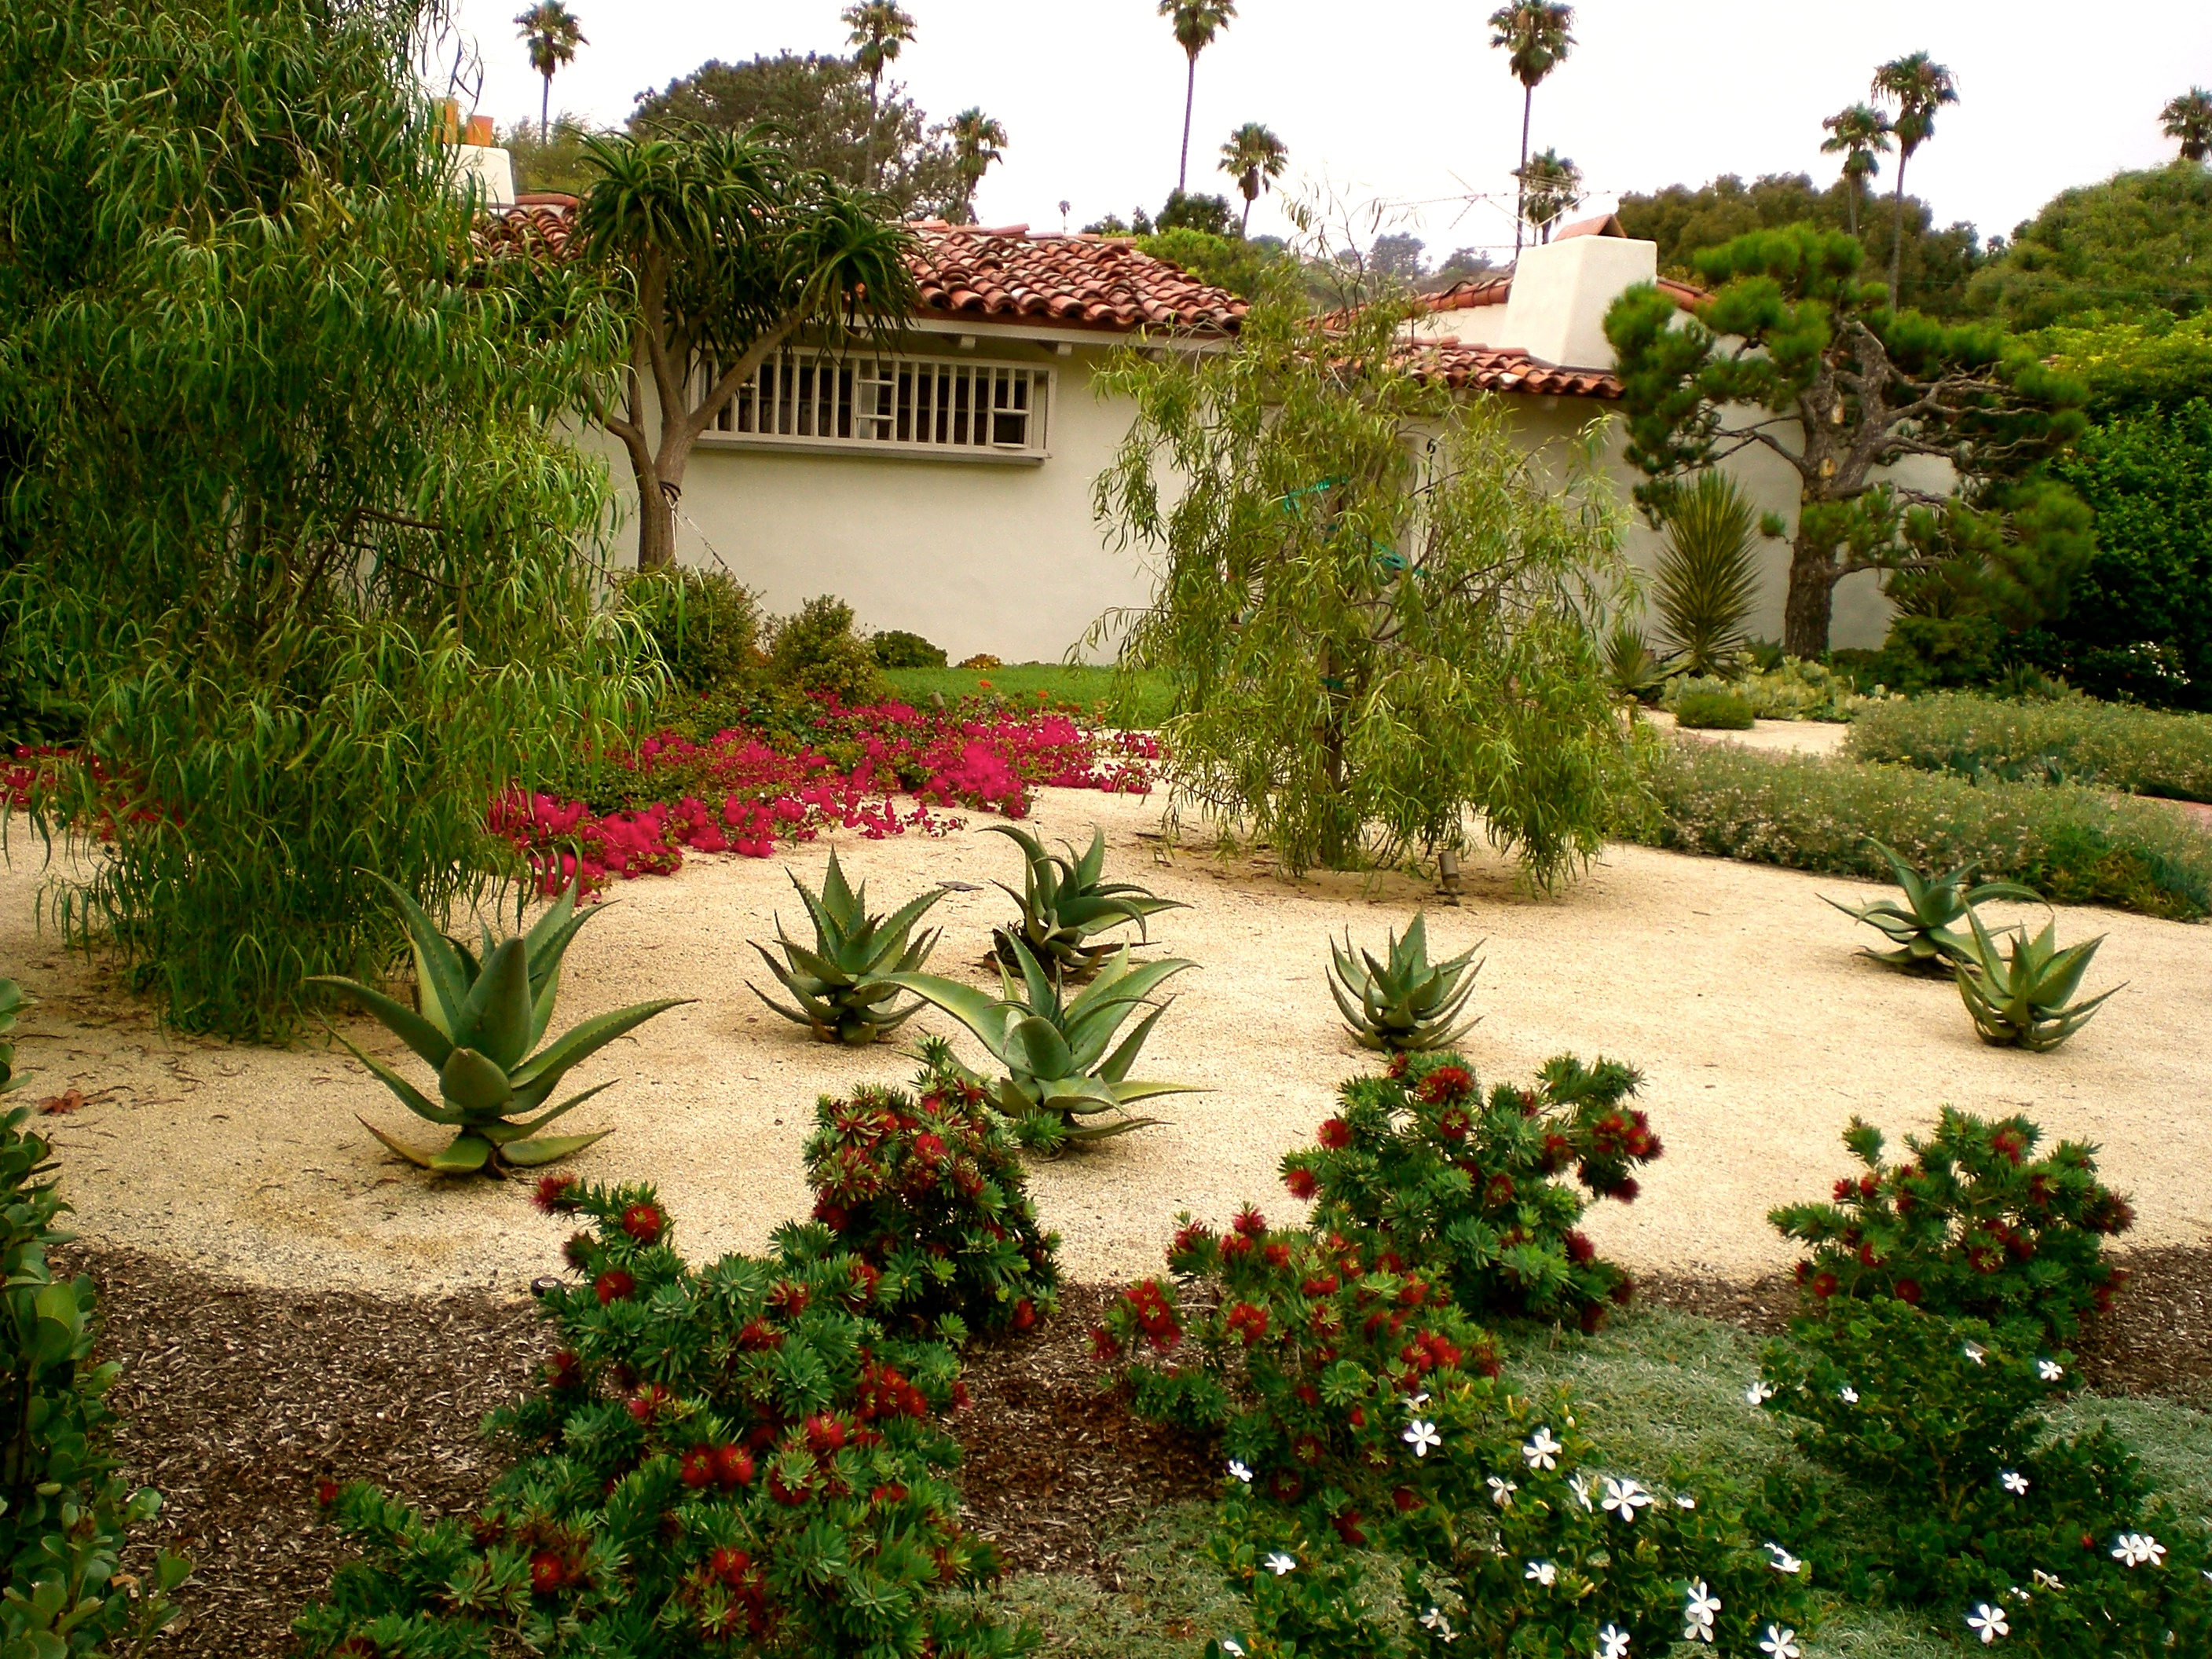 Drought Tolerant Todd Fry Landscape ArchitectsTodd Fry